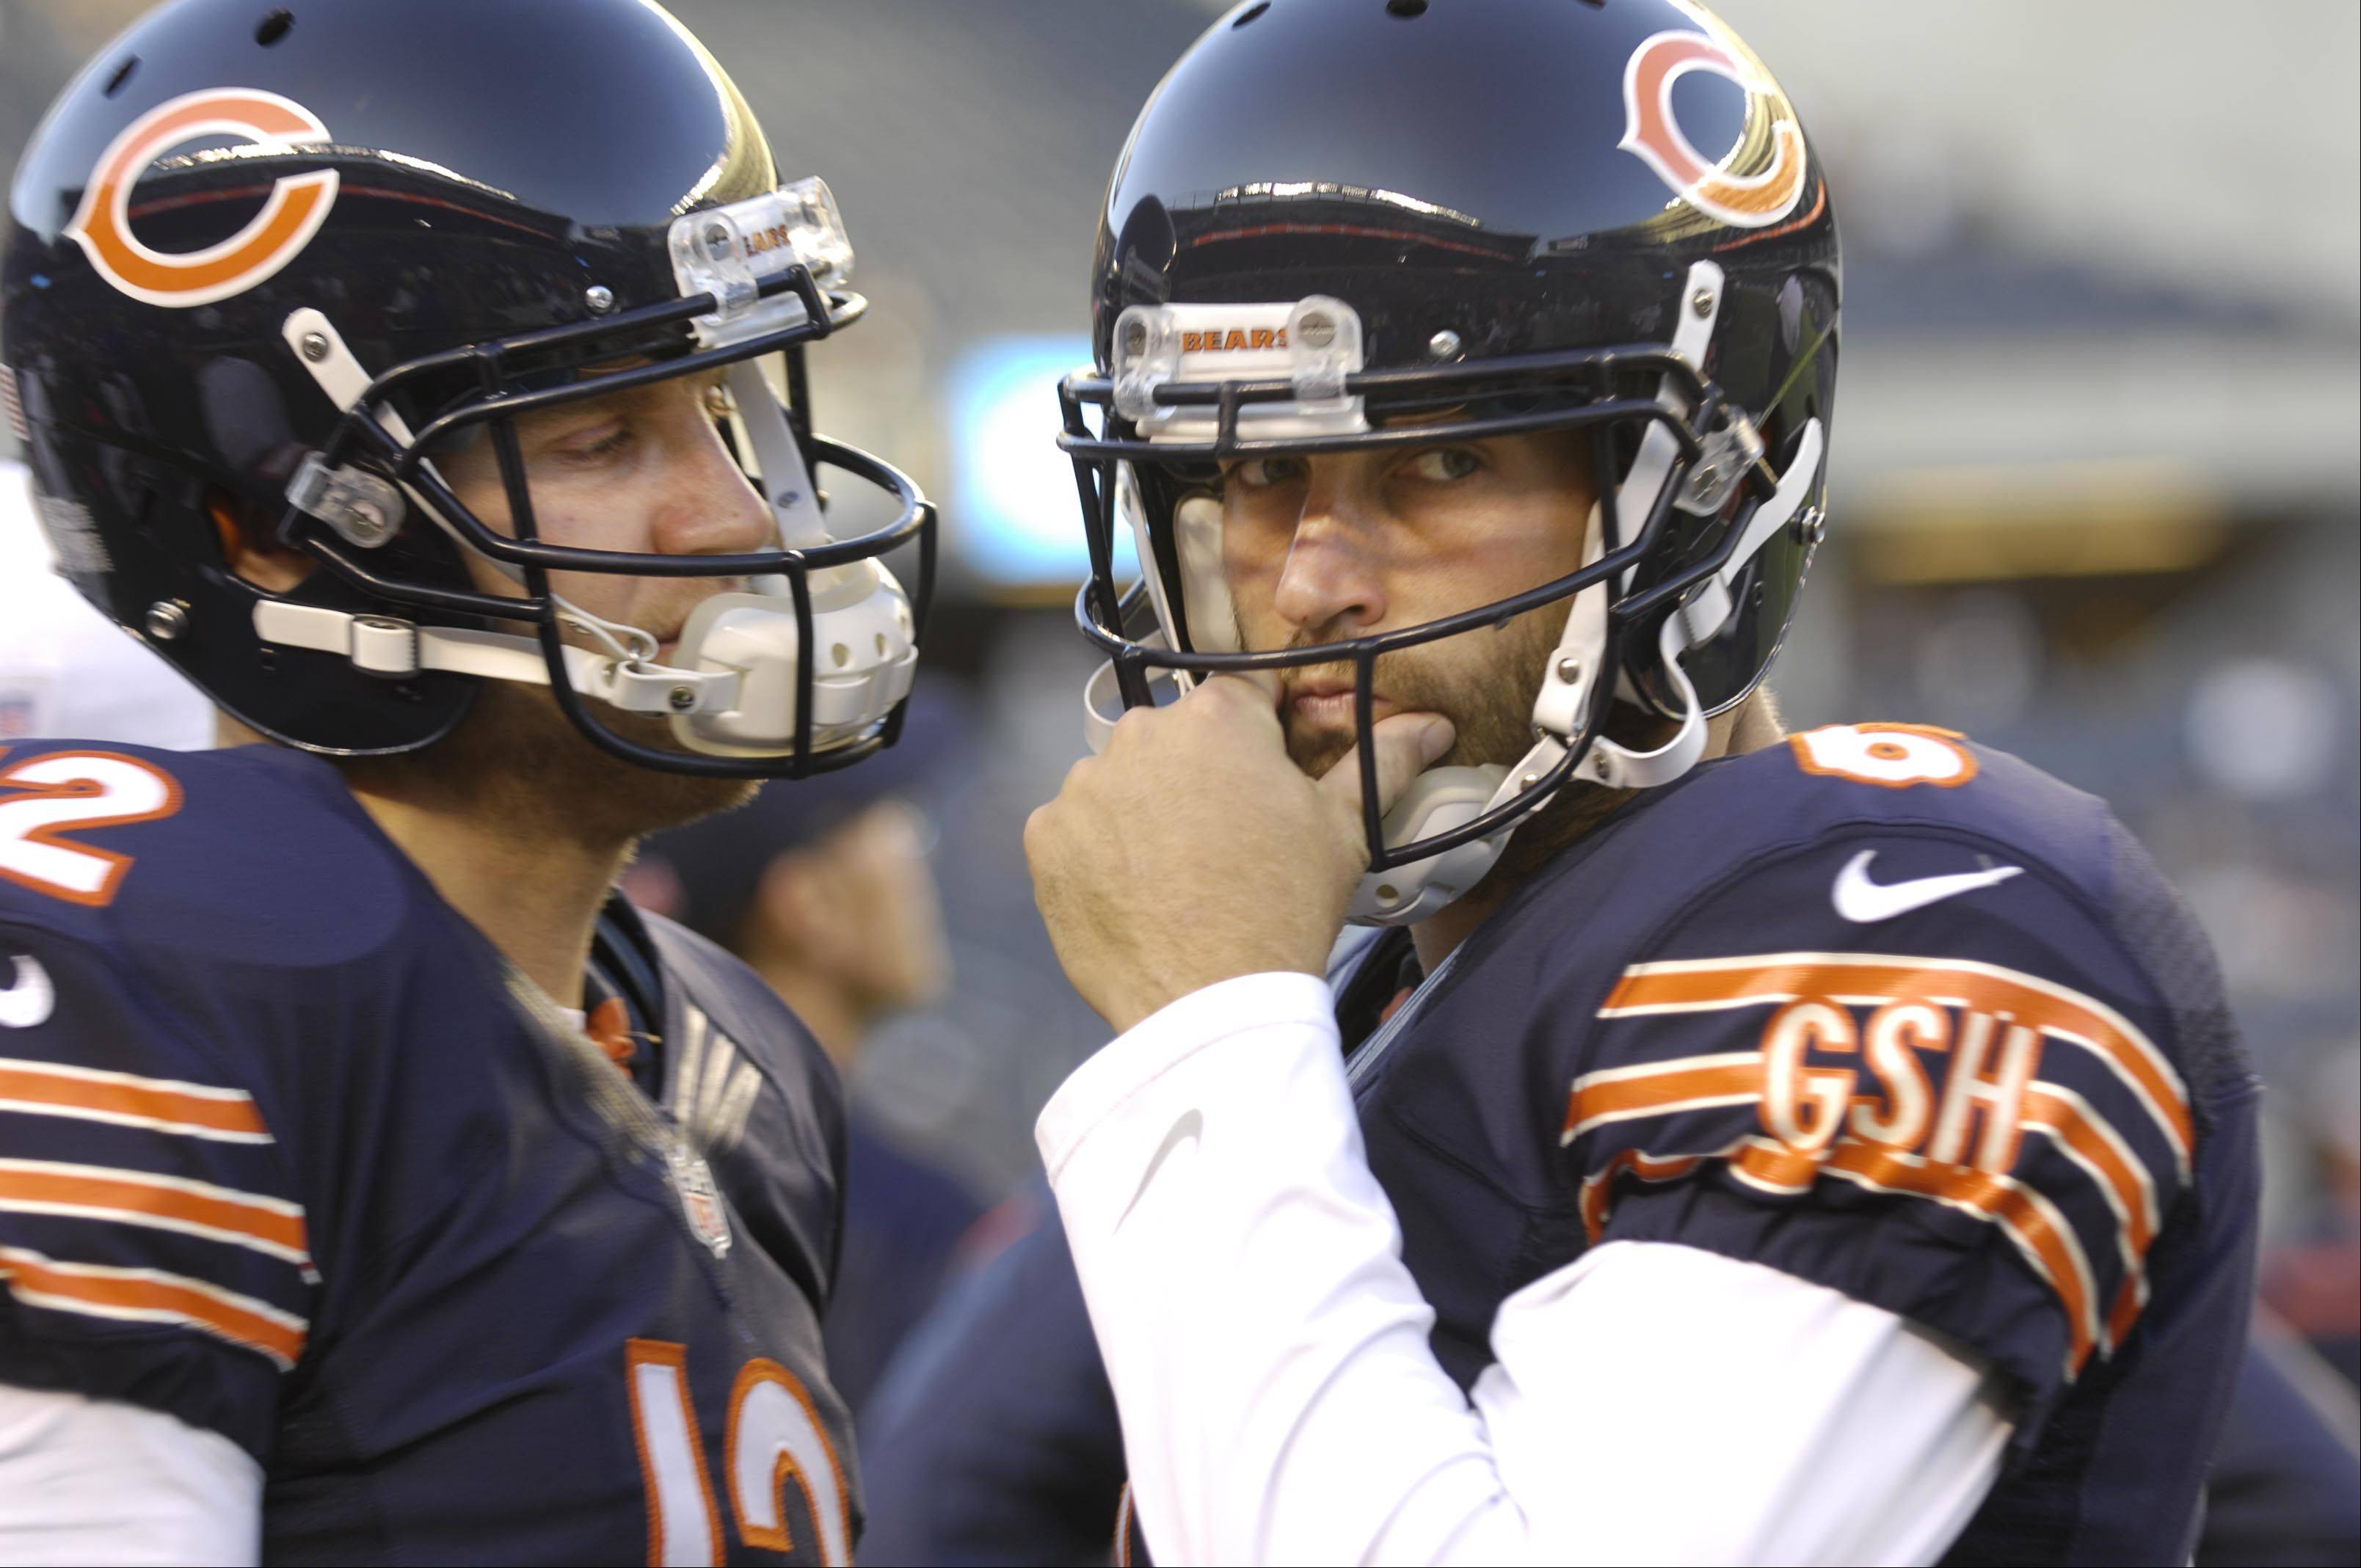 Bears backup quarterback Josh McCown, left, will start Monday against the Green Bay Packers while Jay Cutler recovers from his injured groin.